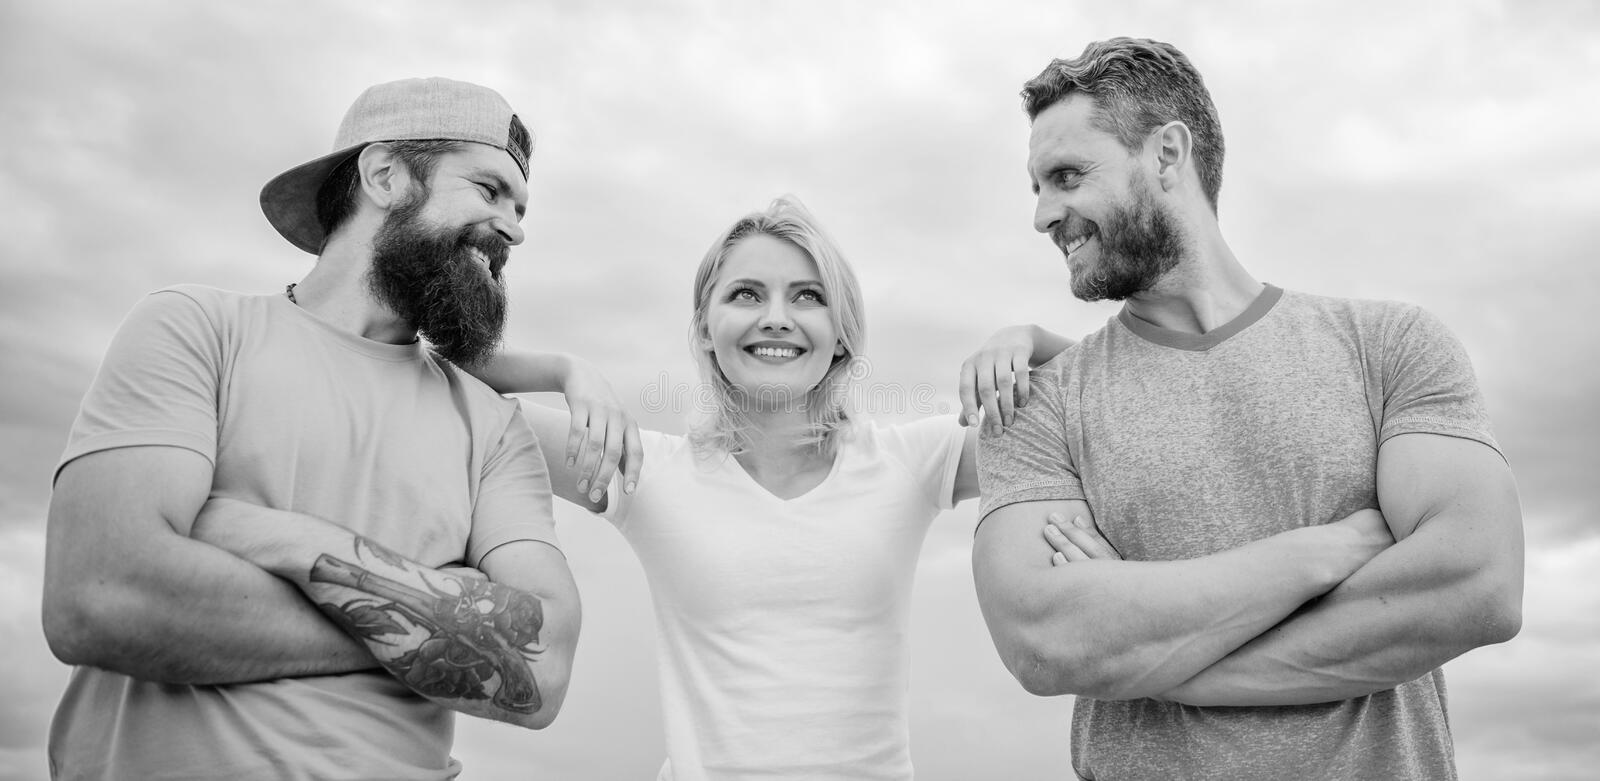 Shoulder on which you can rely. Woman and men look confident while stay close each other like team. Feel comfortable. With friends teammates. Trust and support stock images